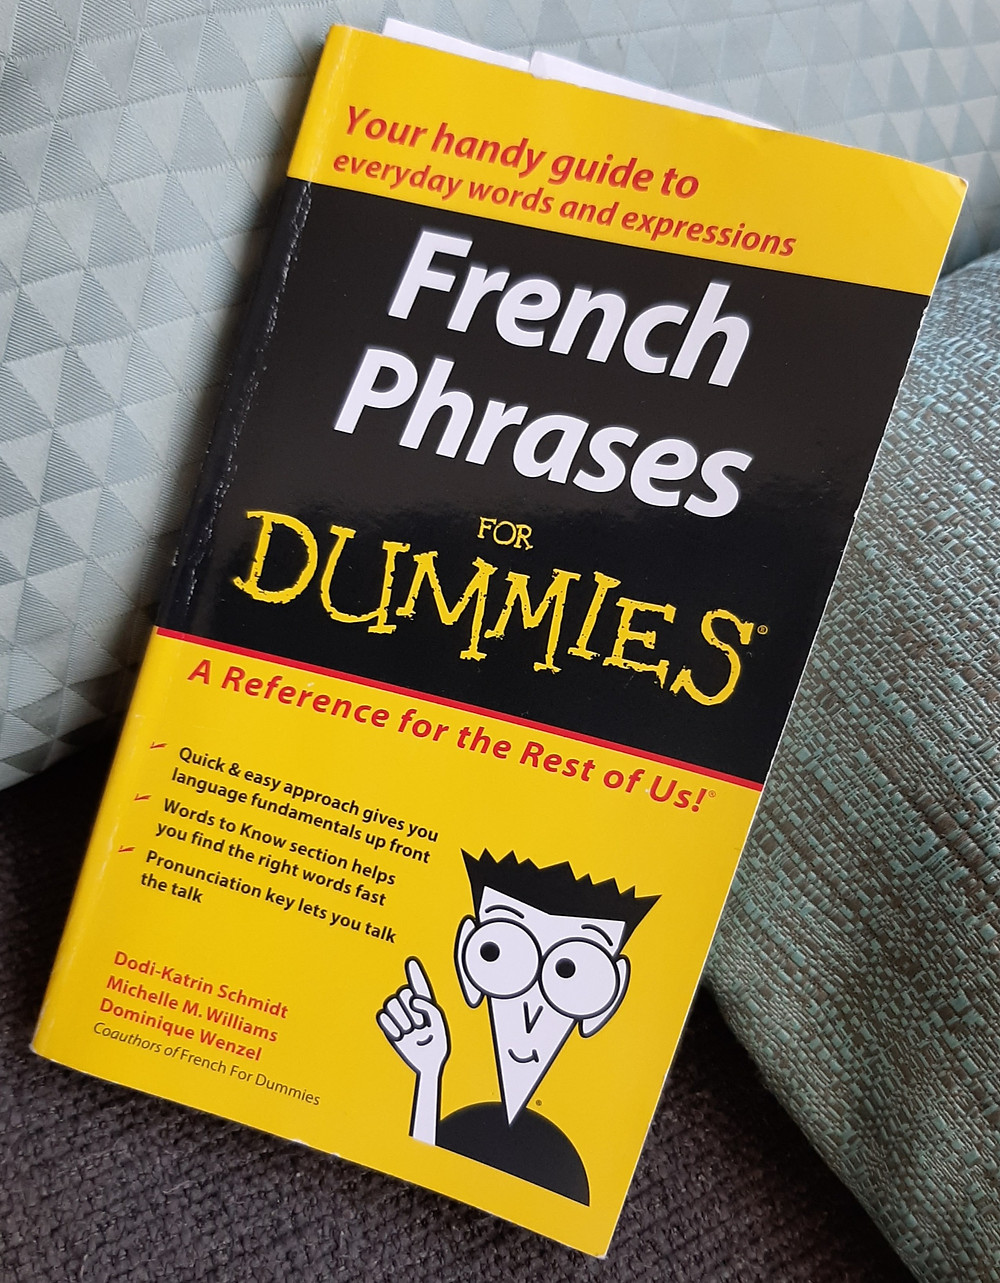 I'm definitely the dummy when it comes to French!